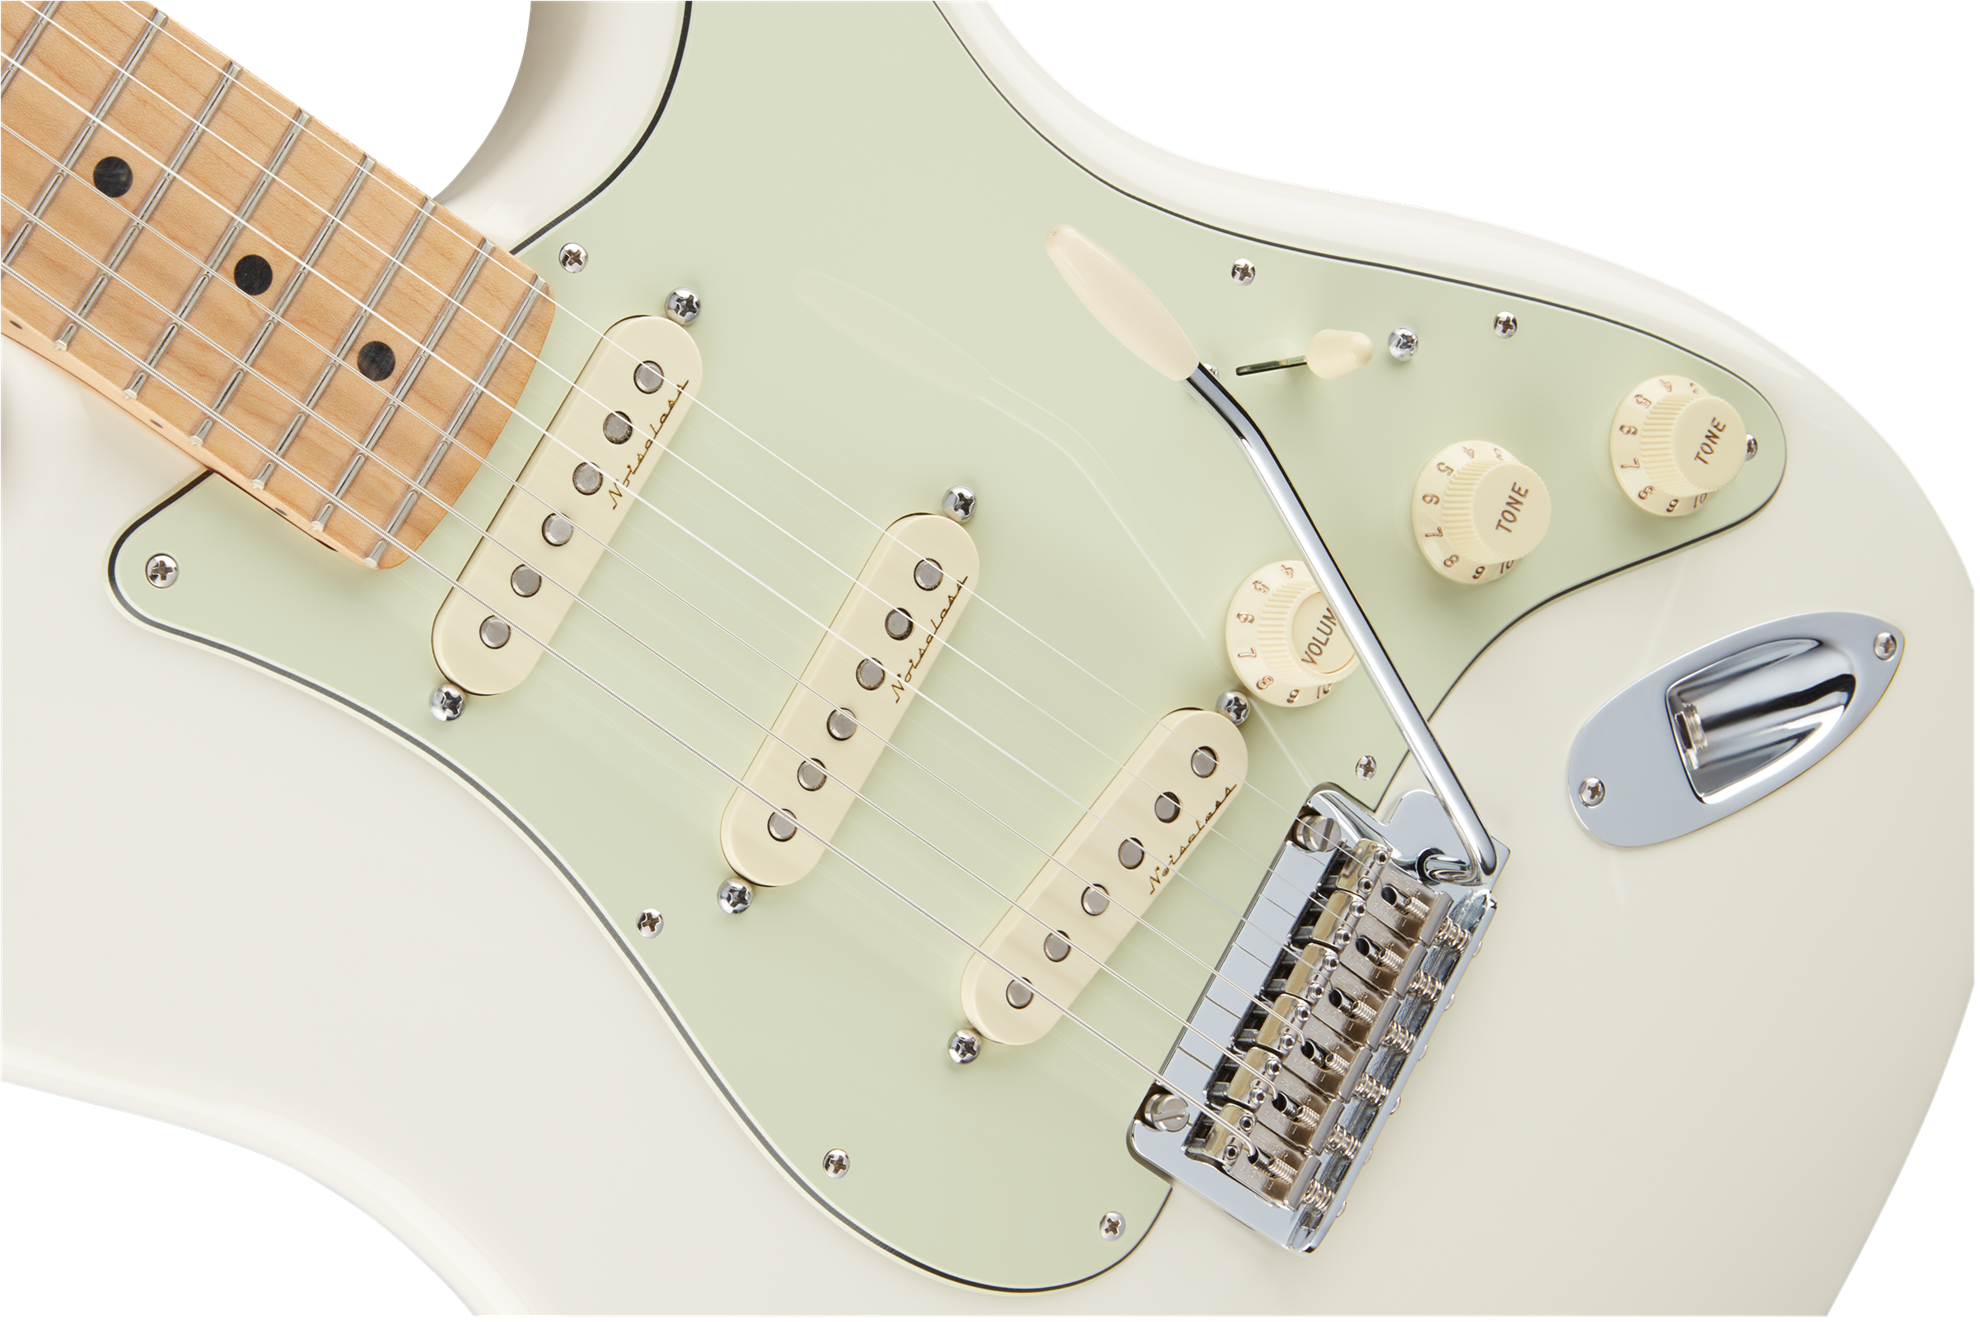 Fender Deluxe Roadhouse Stratocaster Electric Guitar - Maple Neck - Olympic White